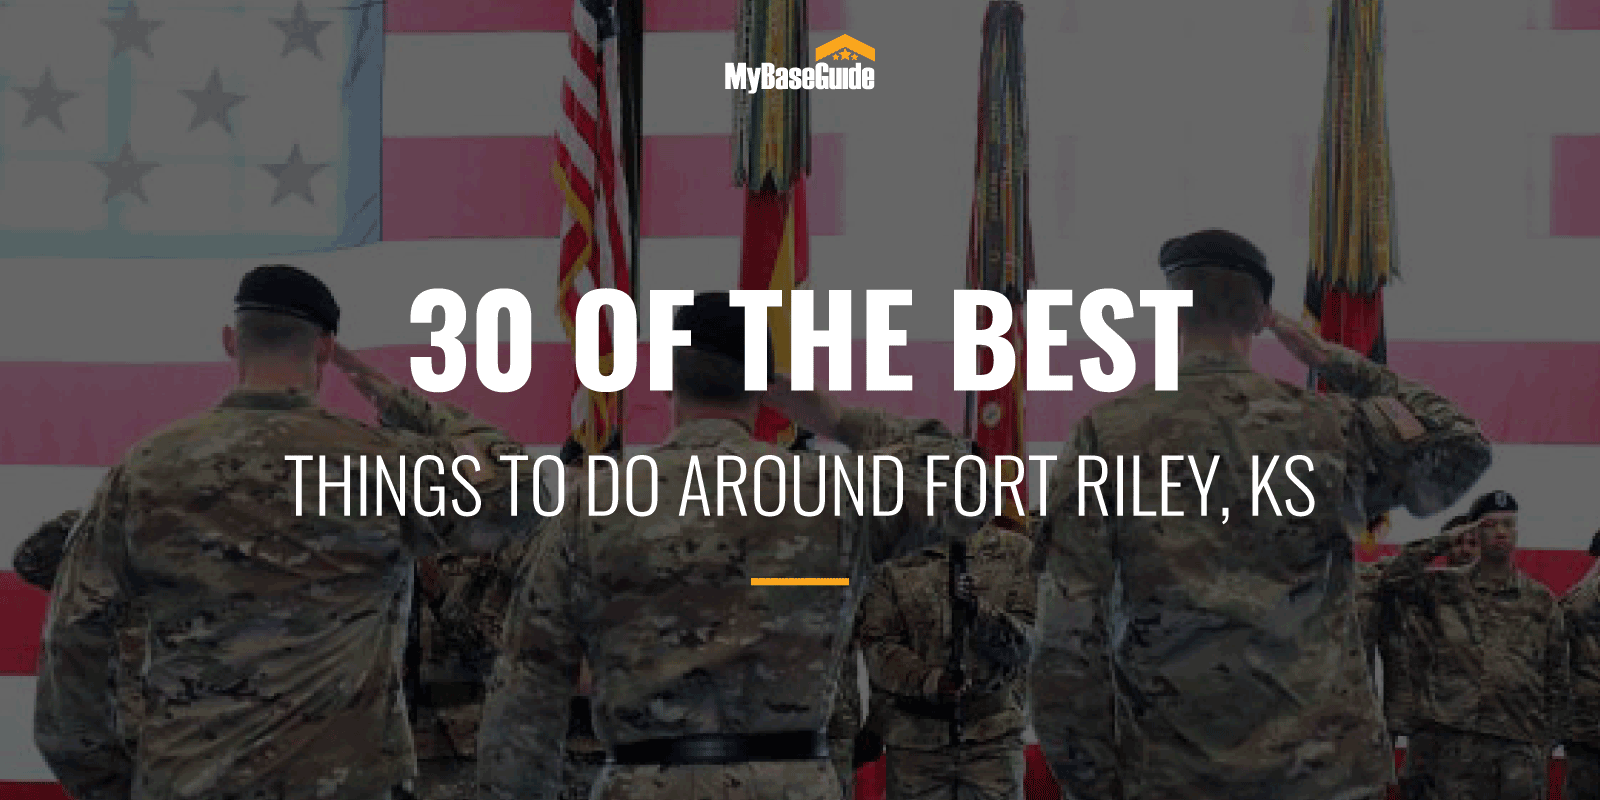 Best Things to Do Fort Riley